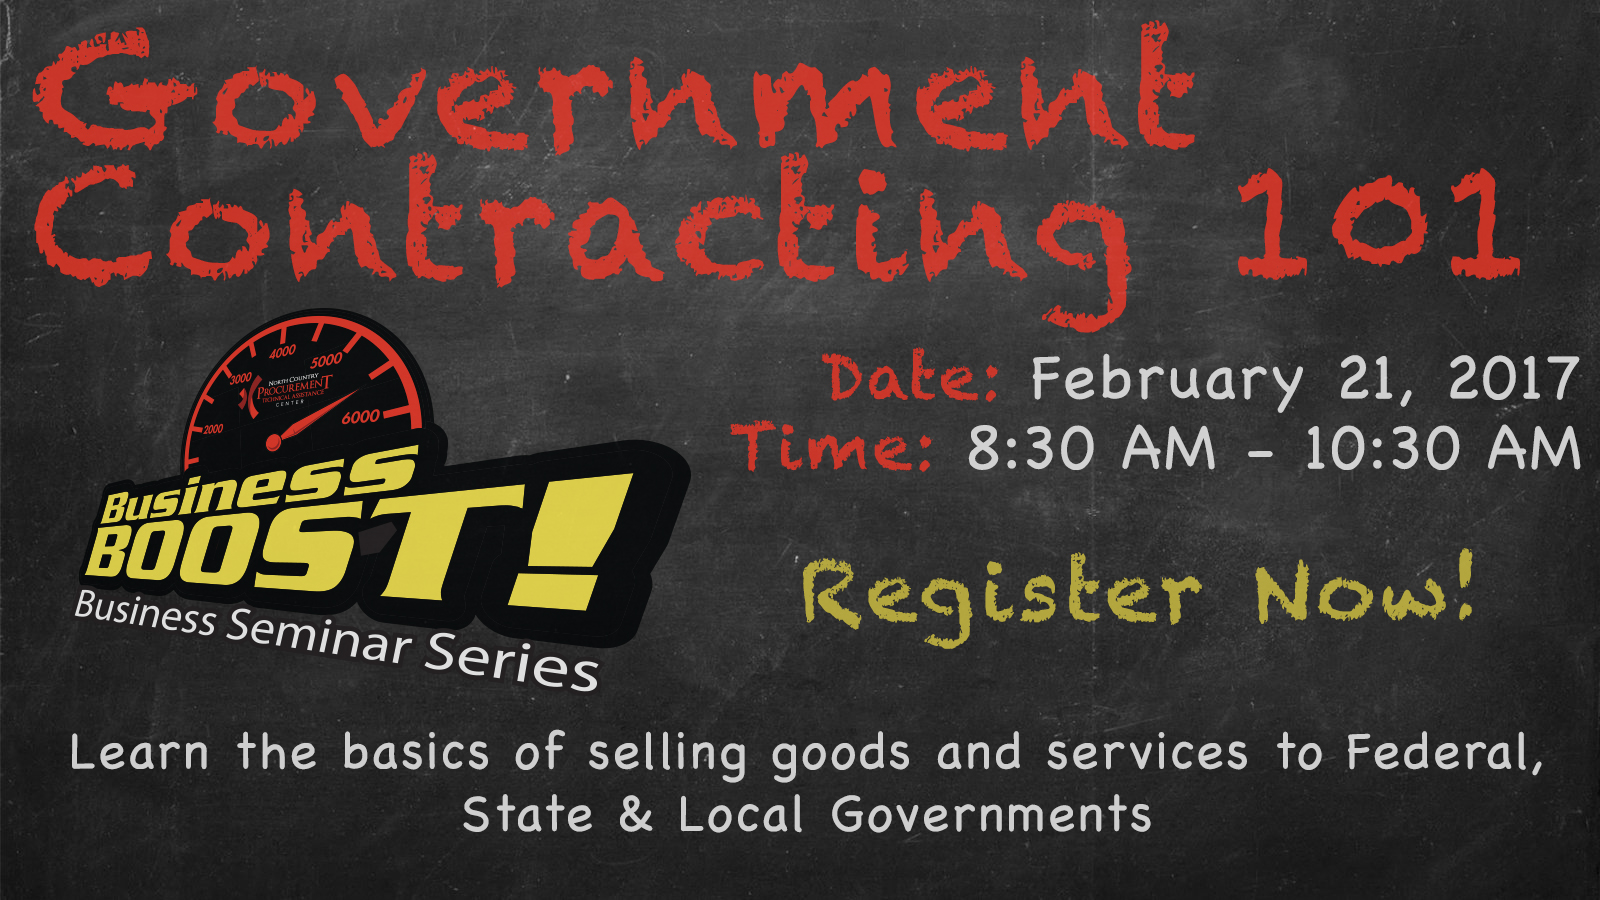 Government Contracting 101 Feb 21 2017 Gwnc Chamber